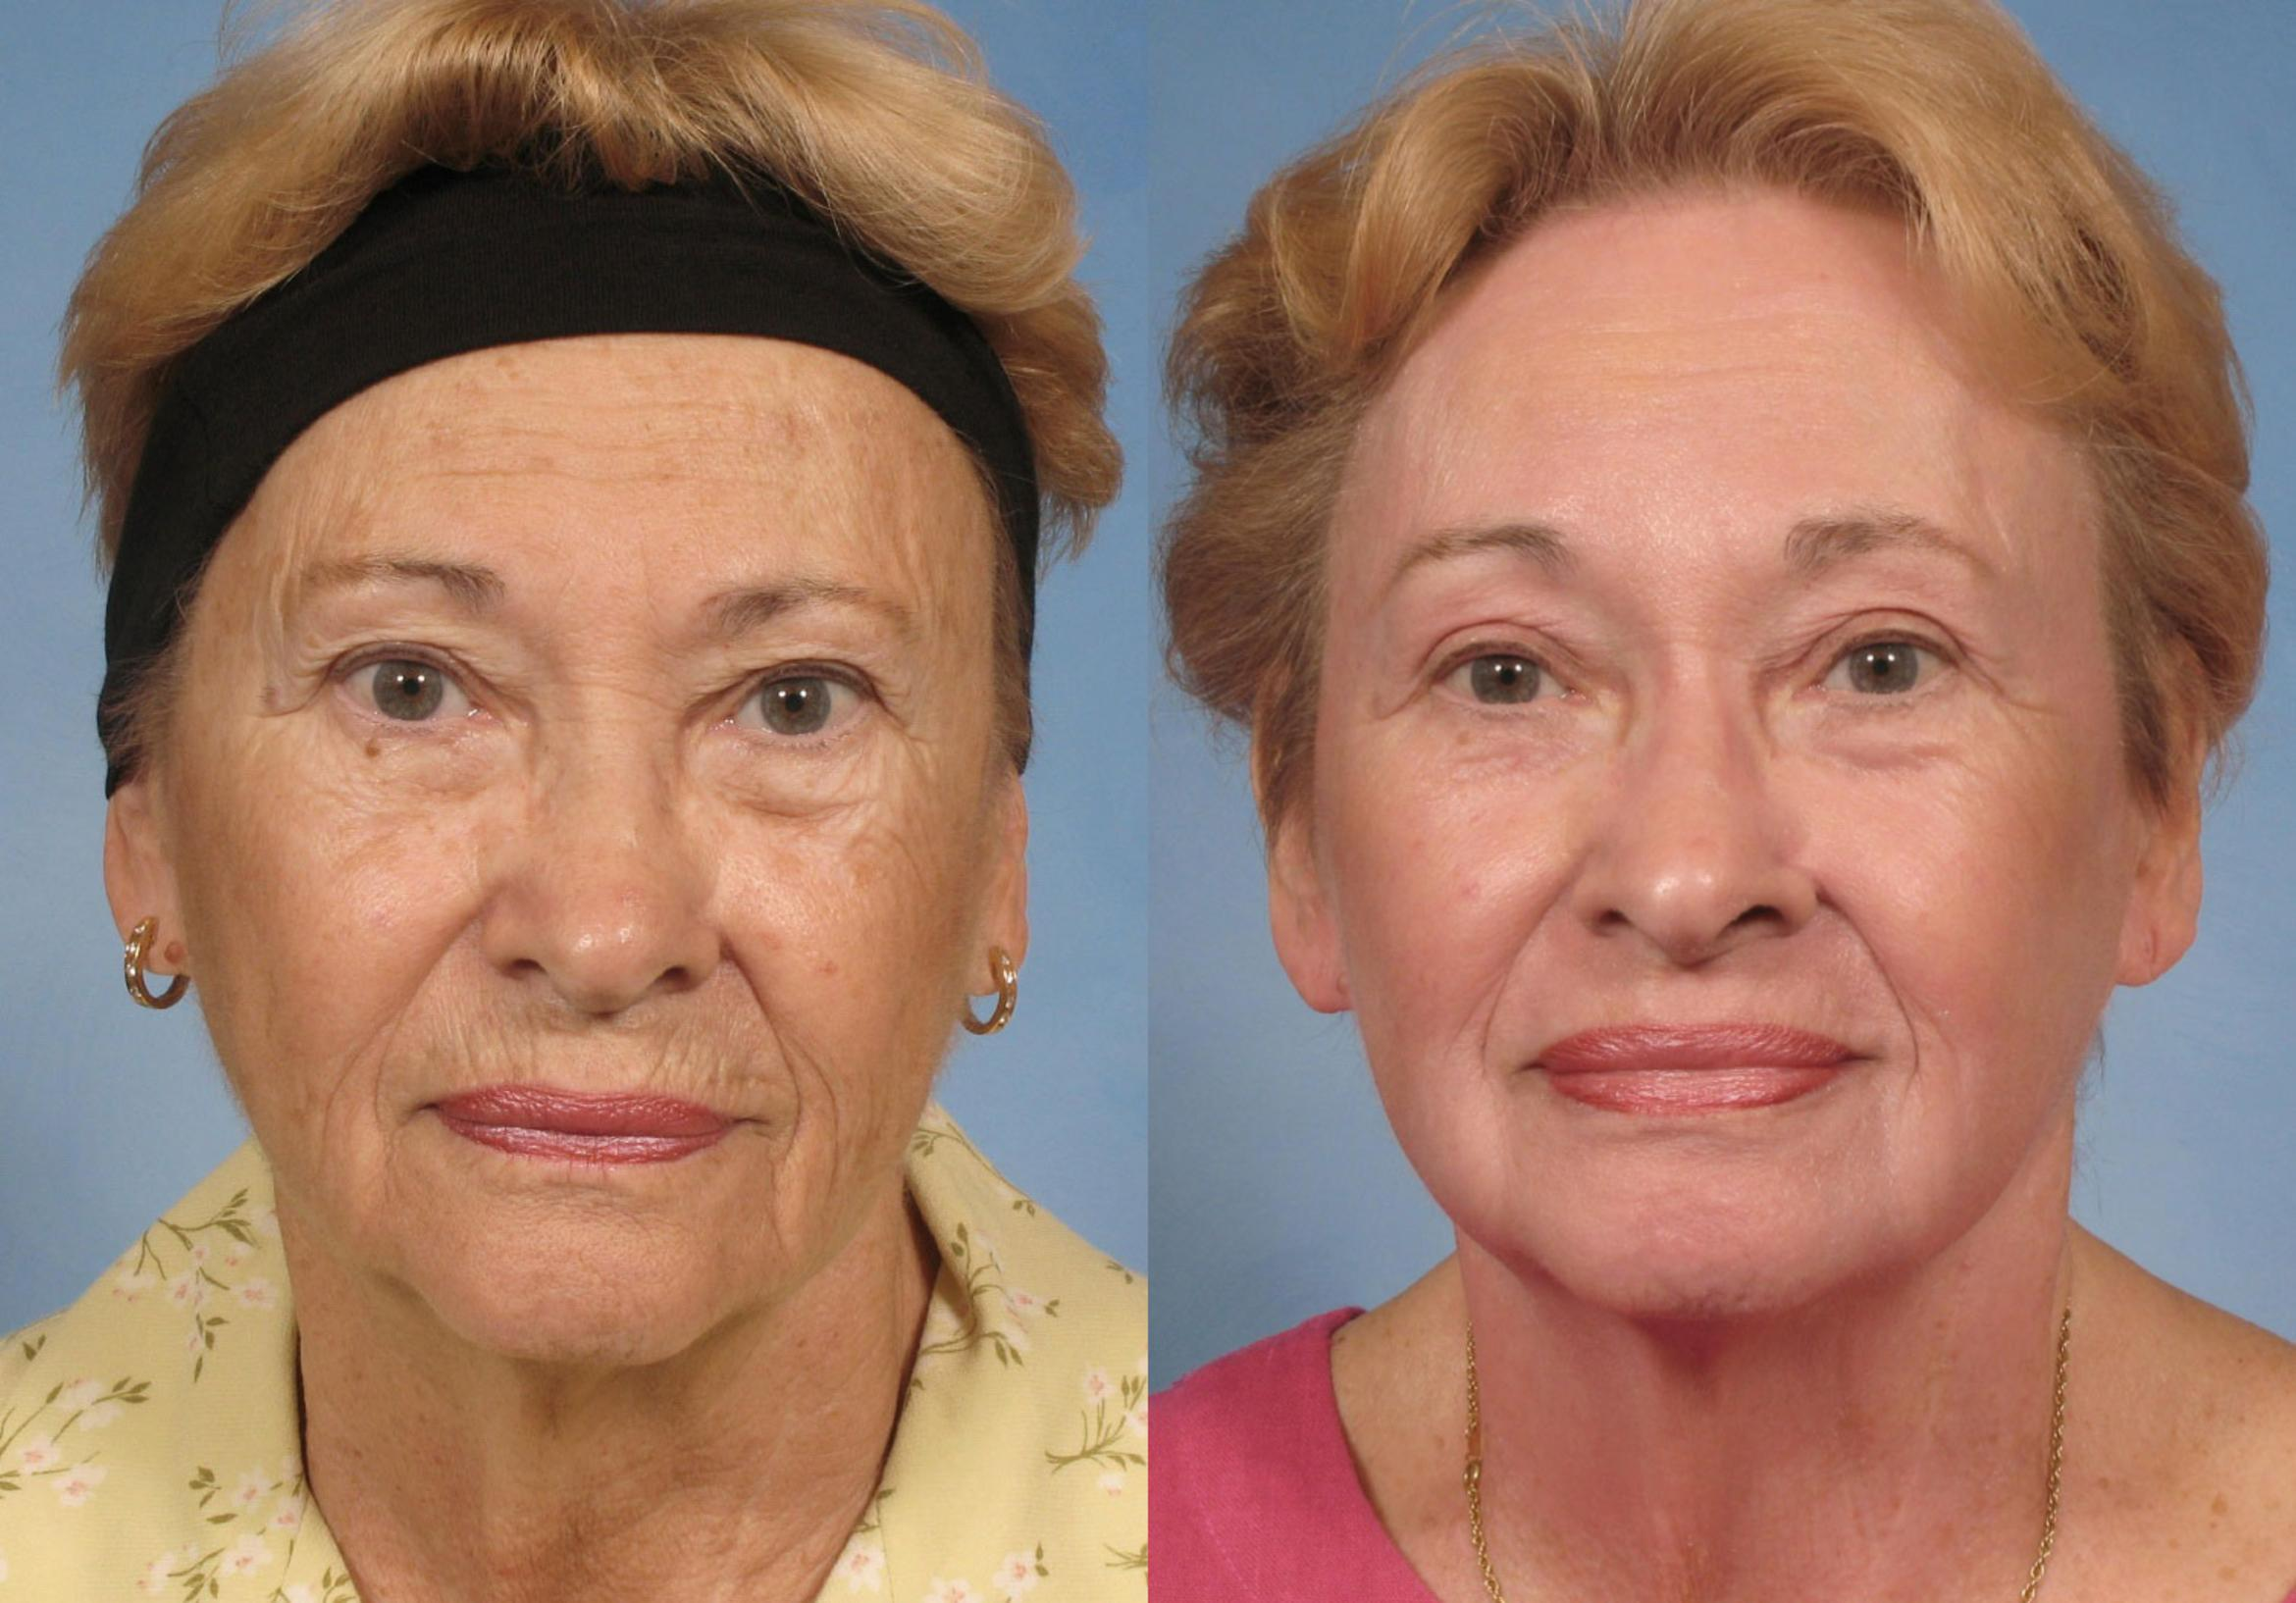 Croton Oil Peel Case 123 Before & After View #2 | Naples, FL | Kent V. Hasen, M.D.